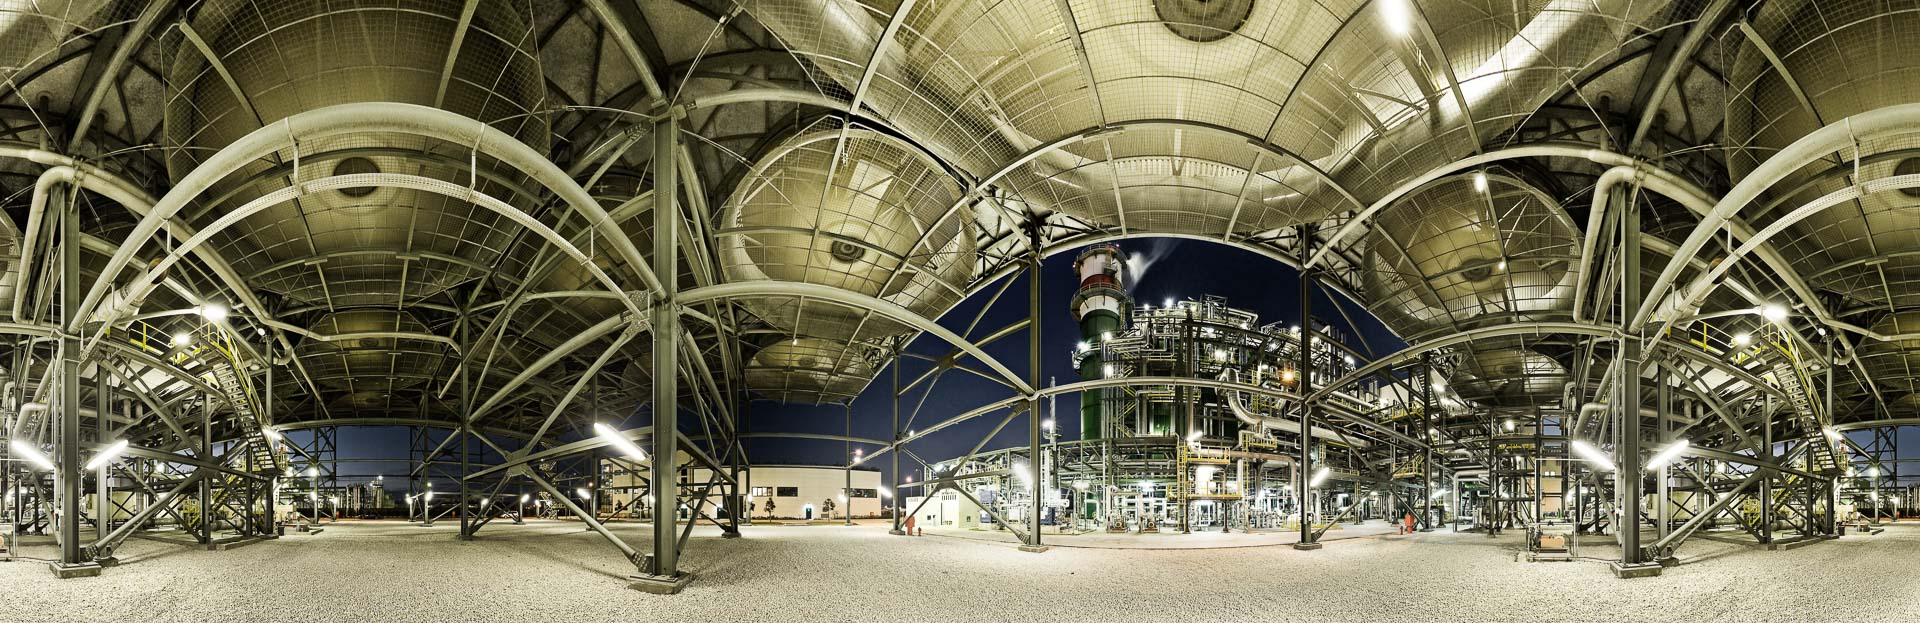 Gas Industrie Ventilatoren – 360° Foto